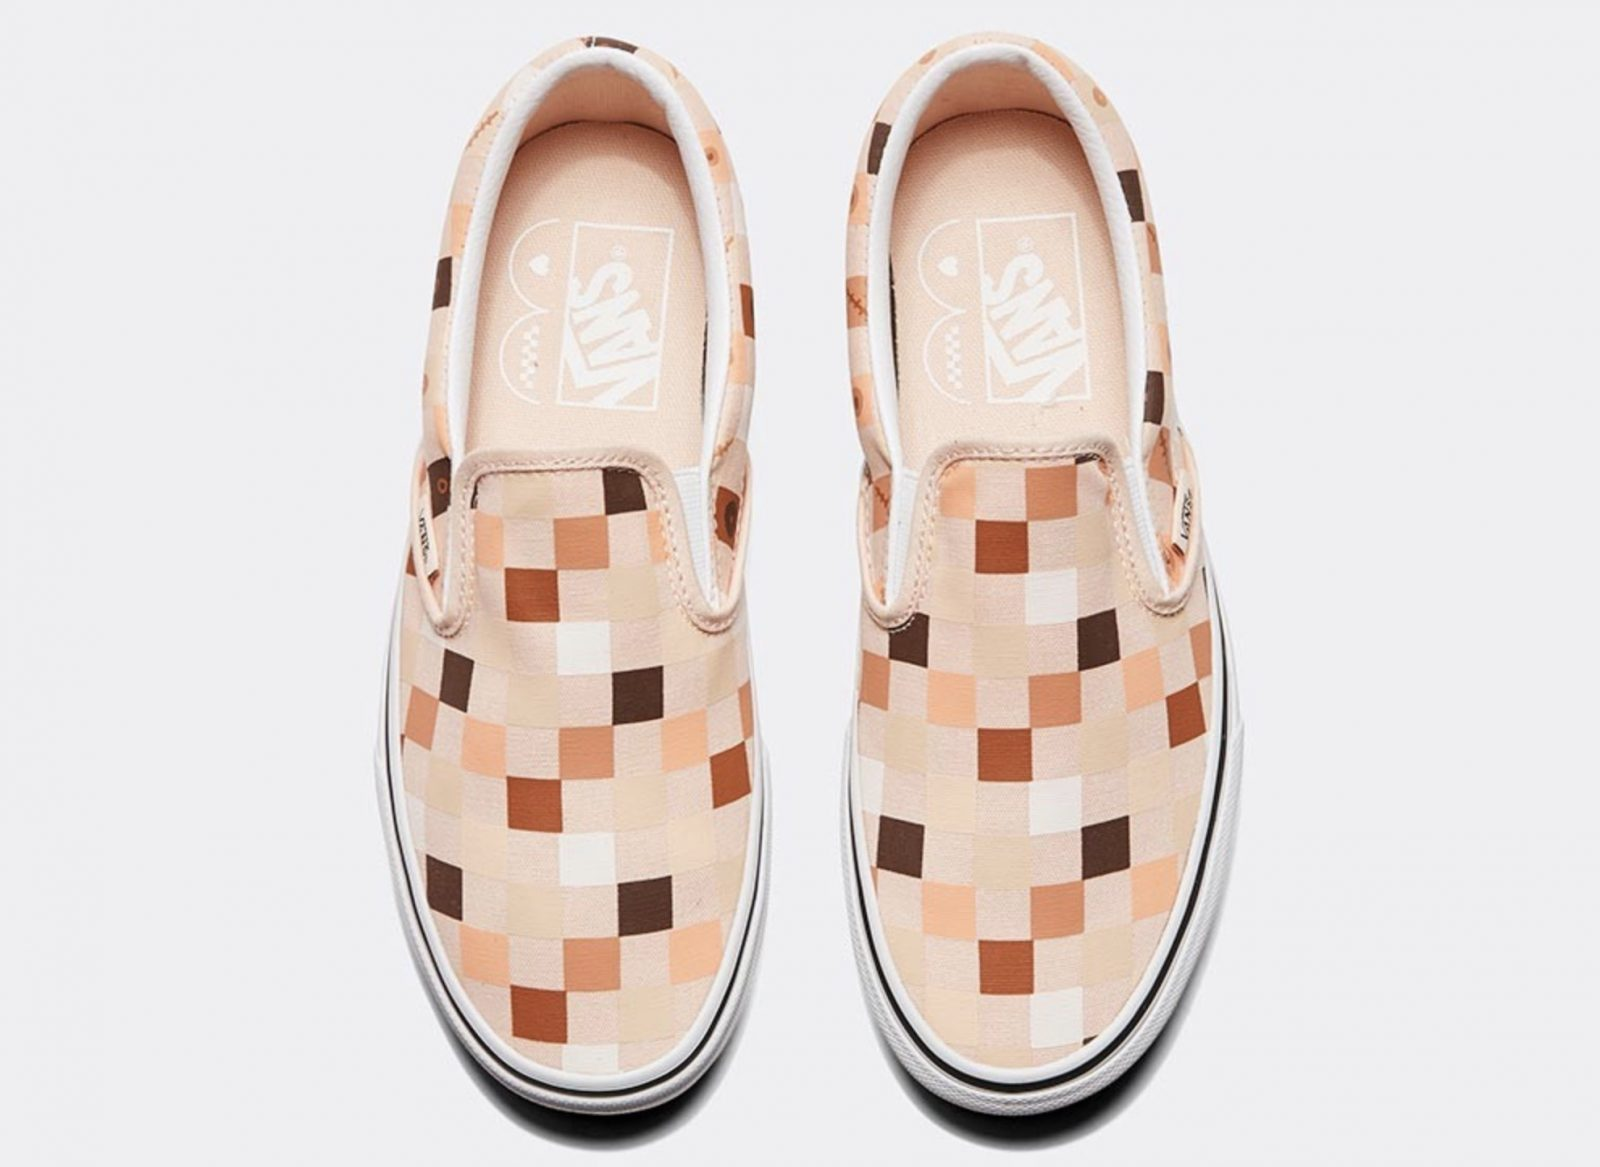 Vans Classic Slip On Breast Cancer Awareness Nude 2 above